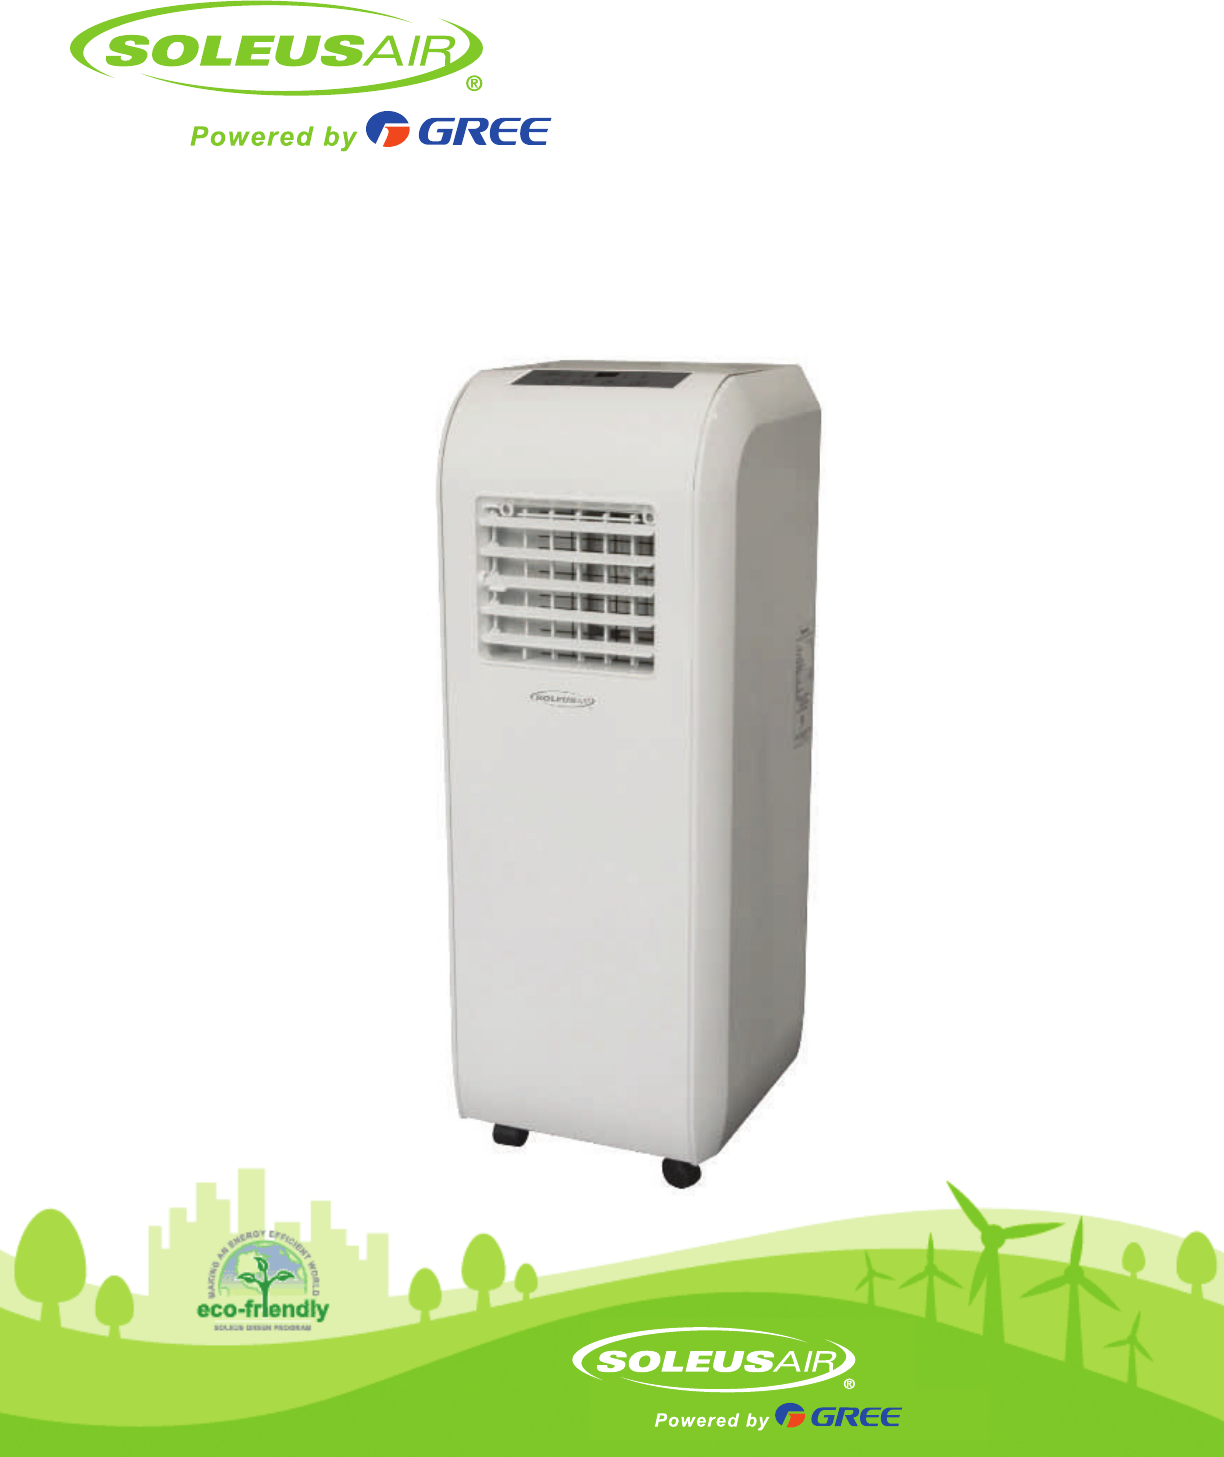 Superieur 8,000 BTU Portable Air Conditioner